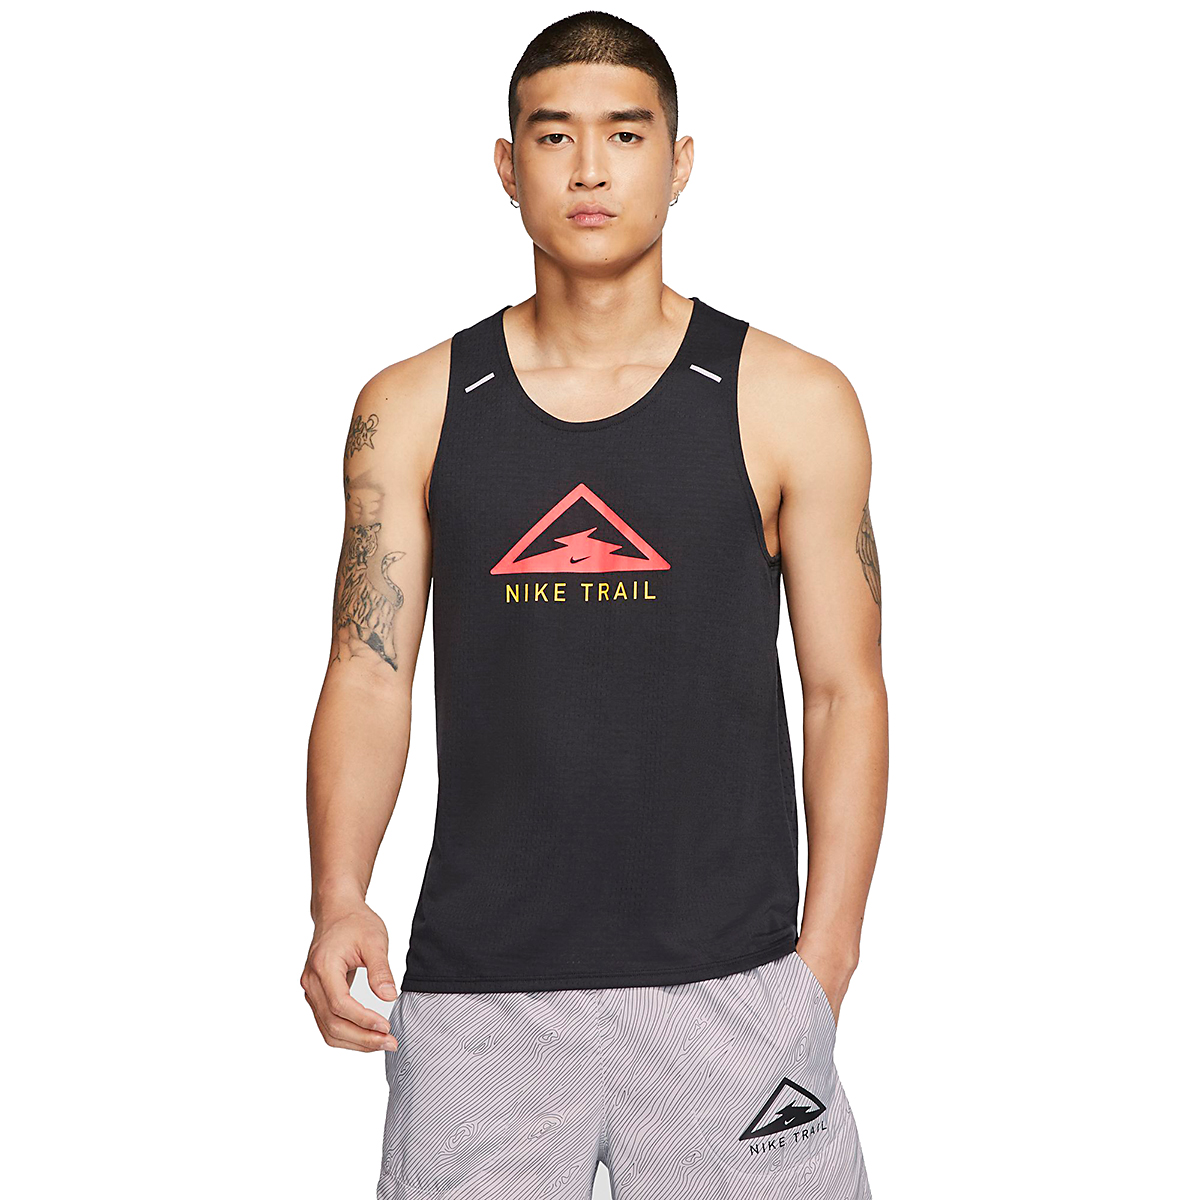 Men's Nike Rise 365 Trail Running Tank - Color: Black/Laser Crimson - Size: S, Black/Laser Crimson, large, image 1